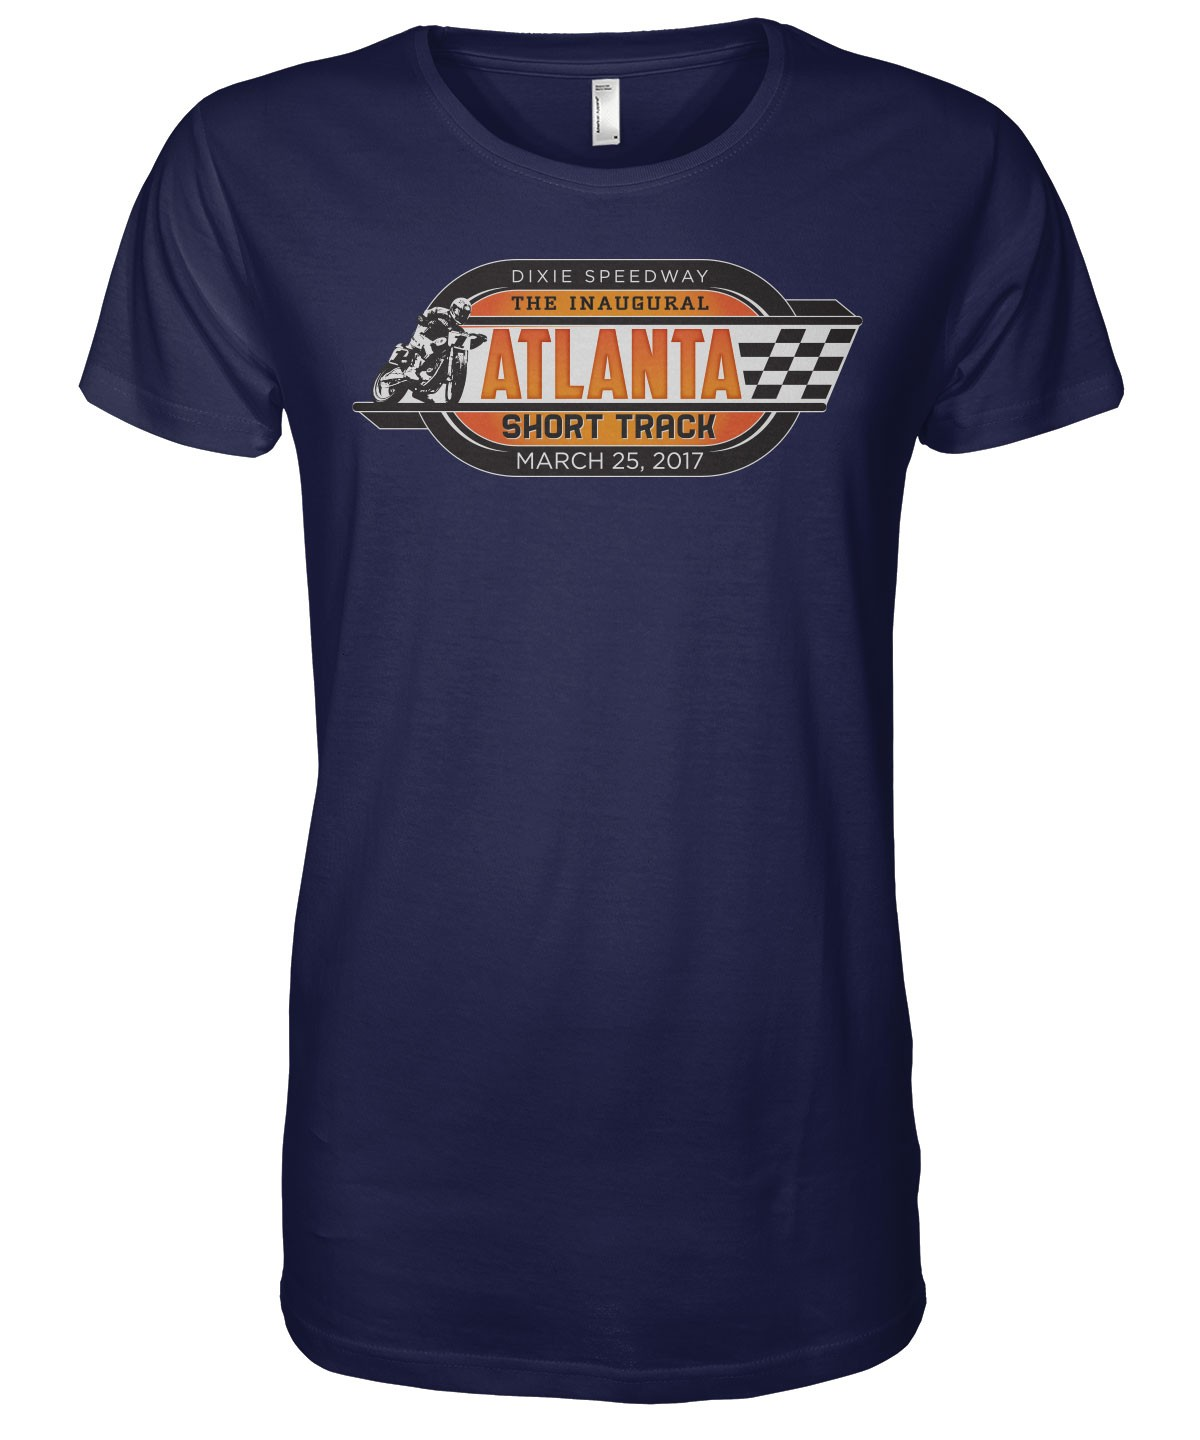 ATLANTA - MEN'S NAVY